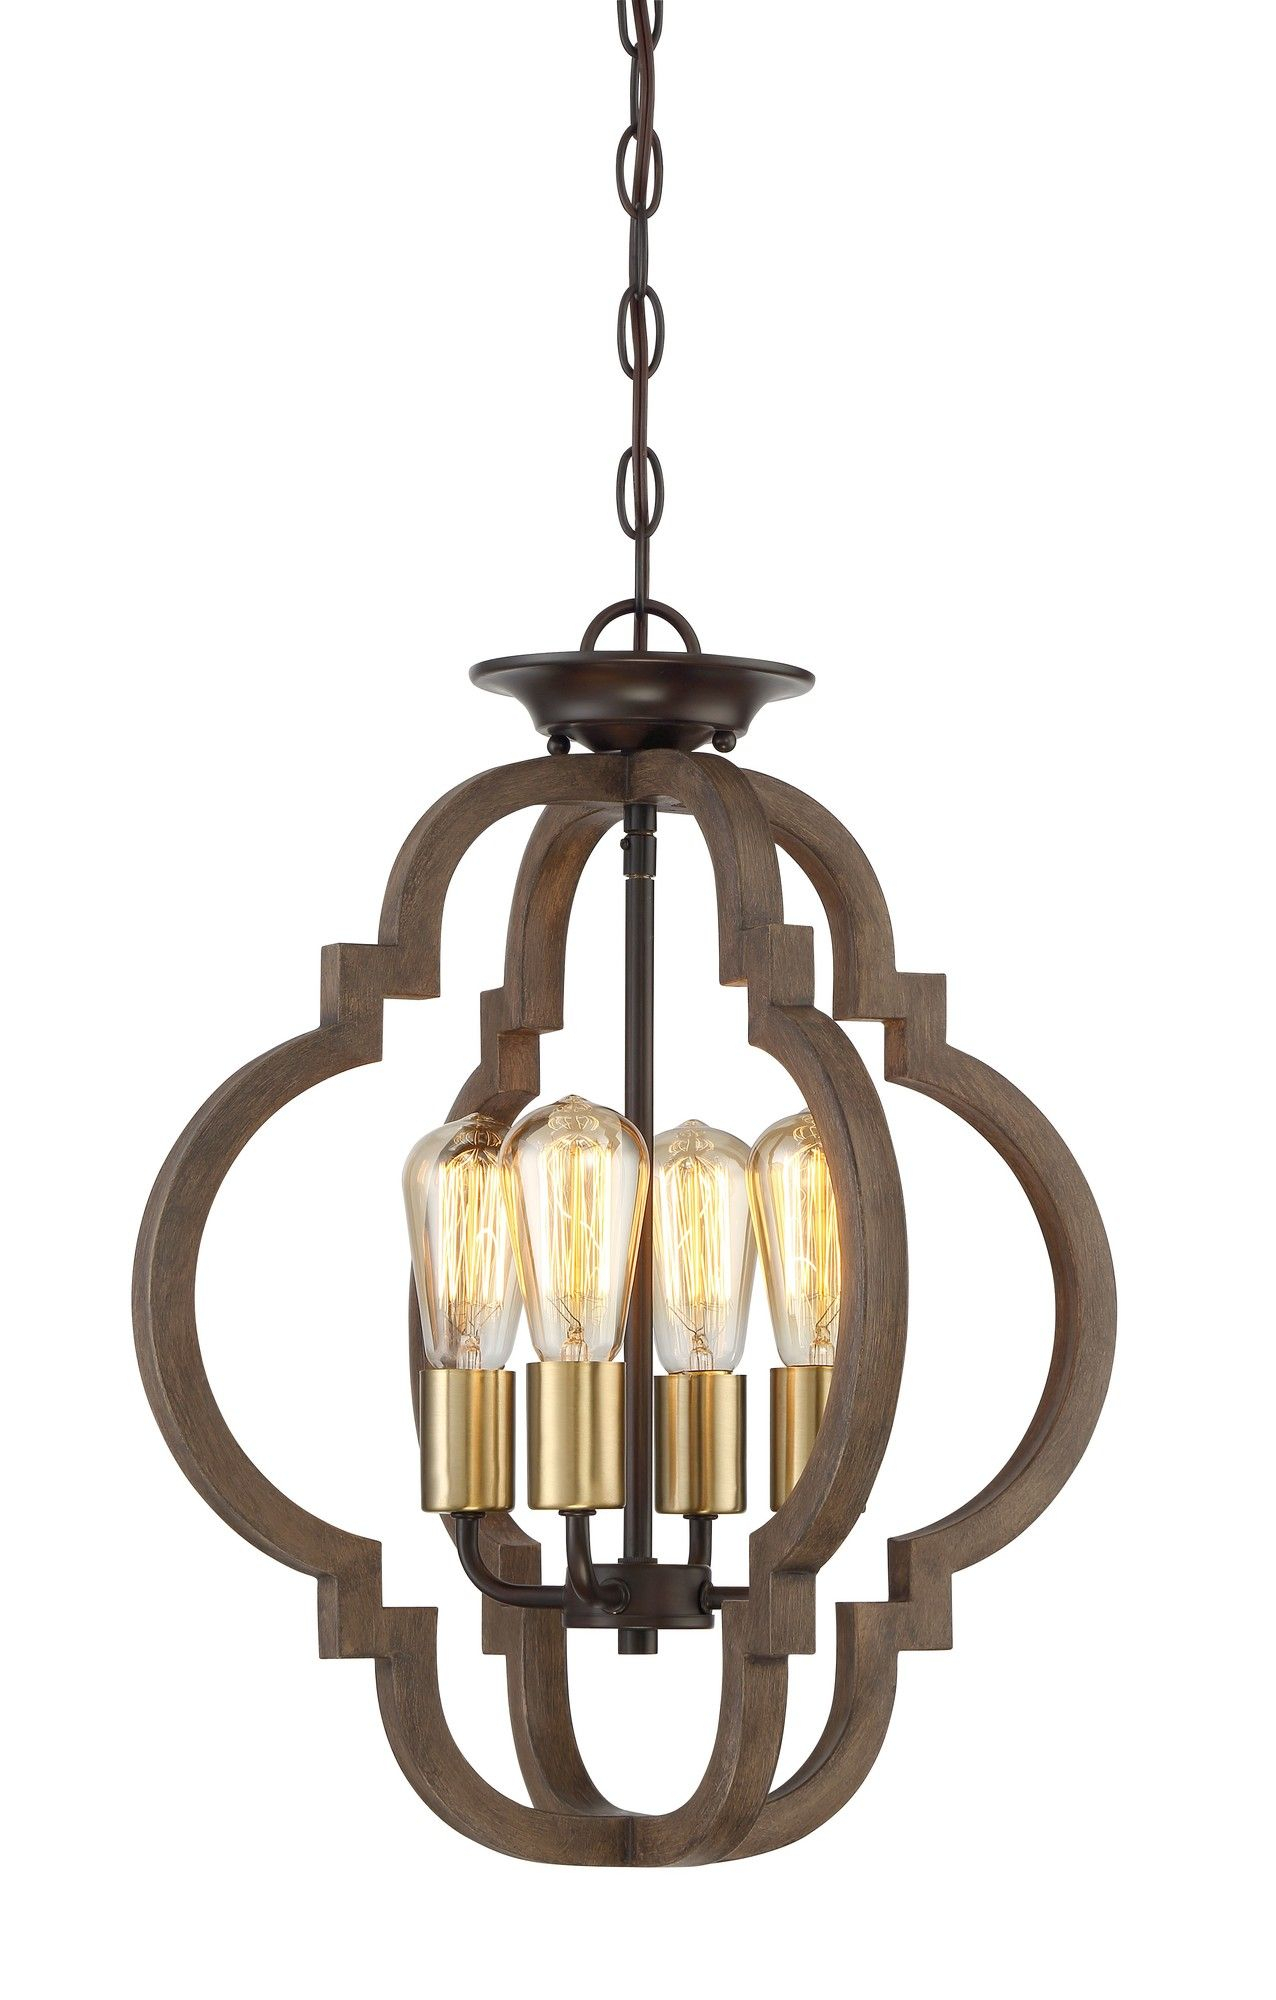 Kaycee 4 Light Geometric Chandelier | Lighting | Ceiling For Lynn 6 Light Geometric Chandeliers (Photo 16 of 30)